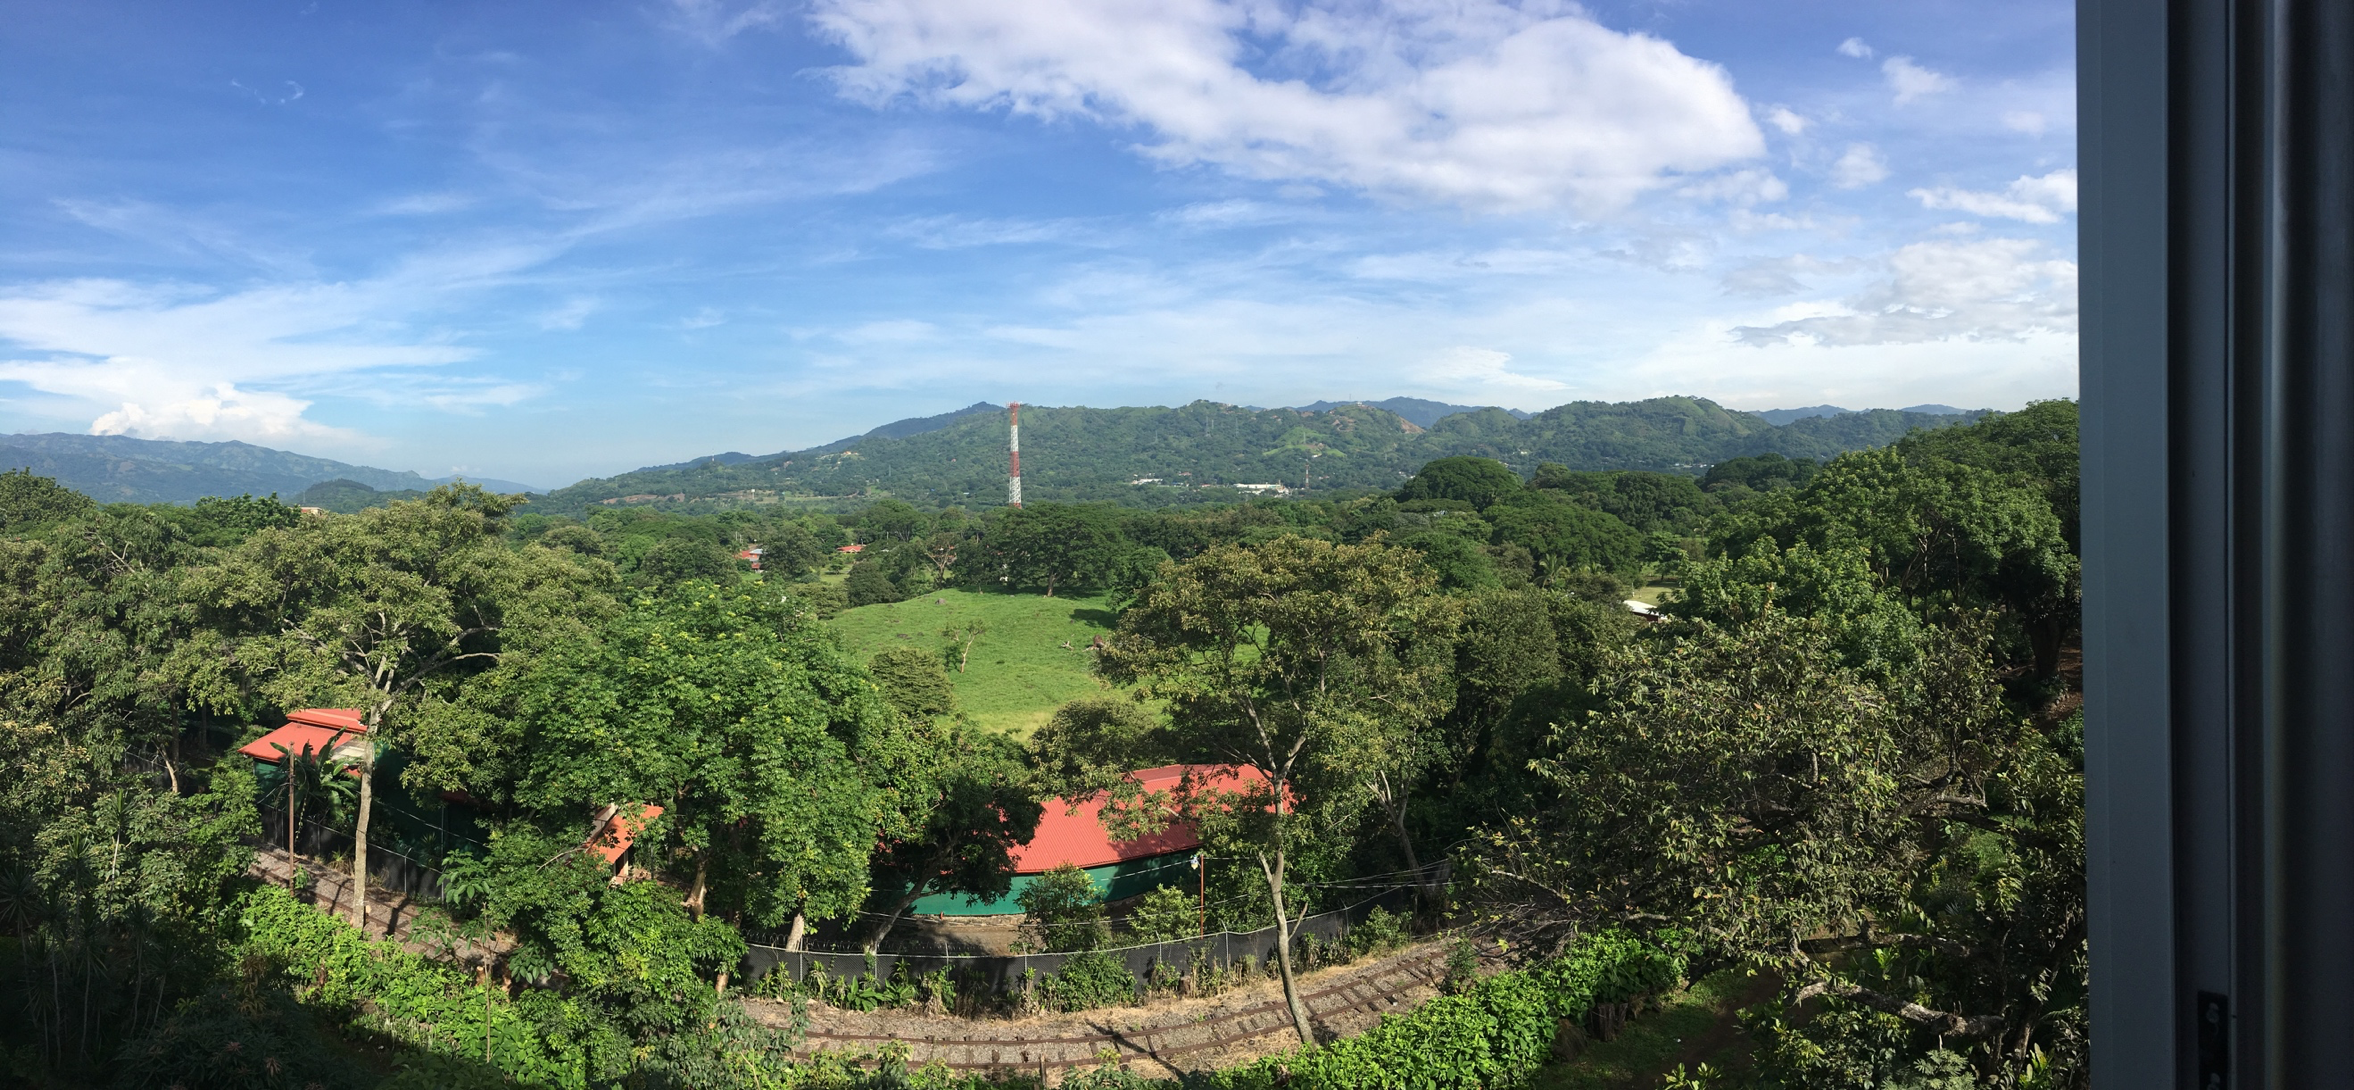 View of the rain forest from a Costa Rican Airbnb. Photo by Sara Benitez, M2.